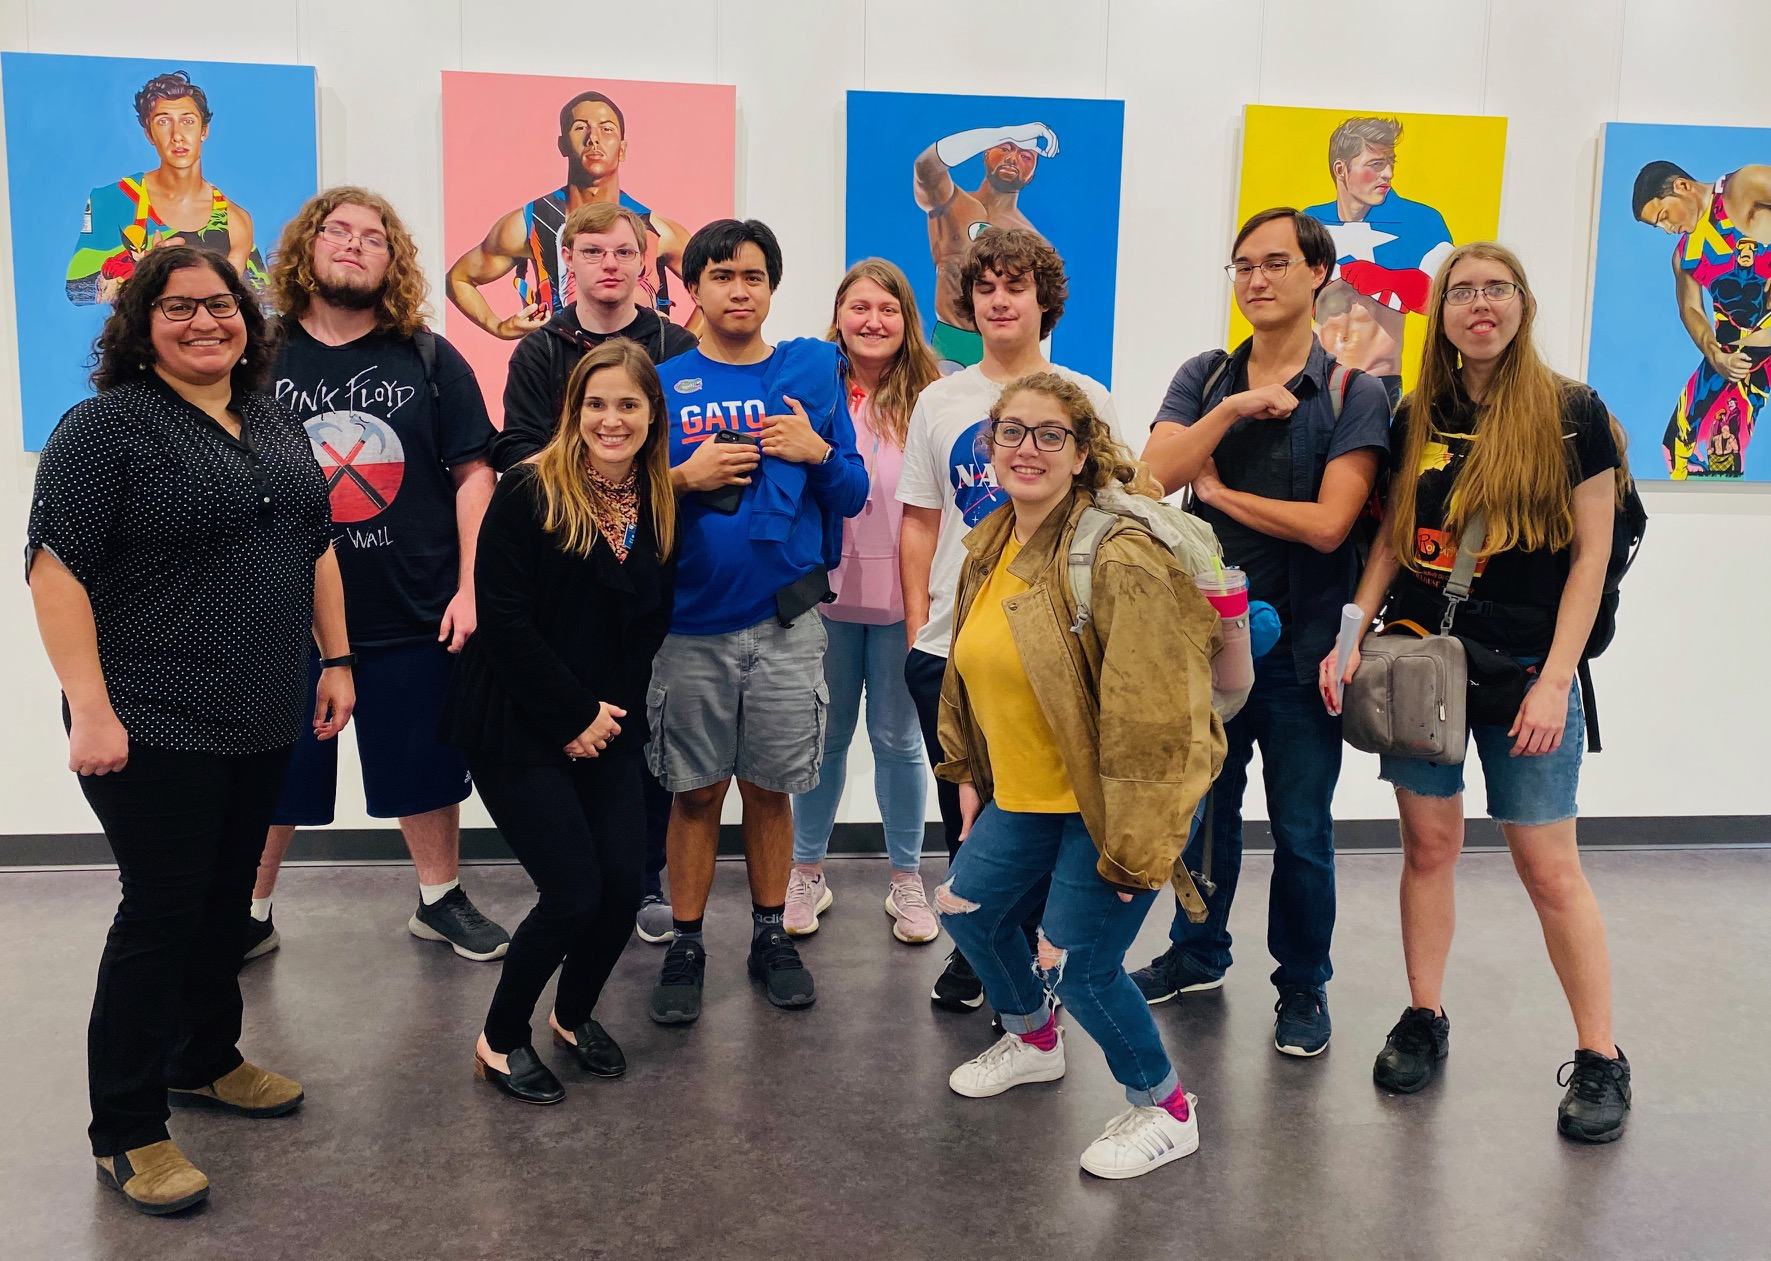 A group of social Gators students at the art gallery in the Reitz